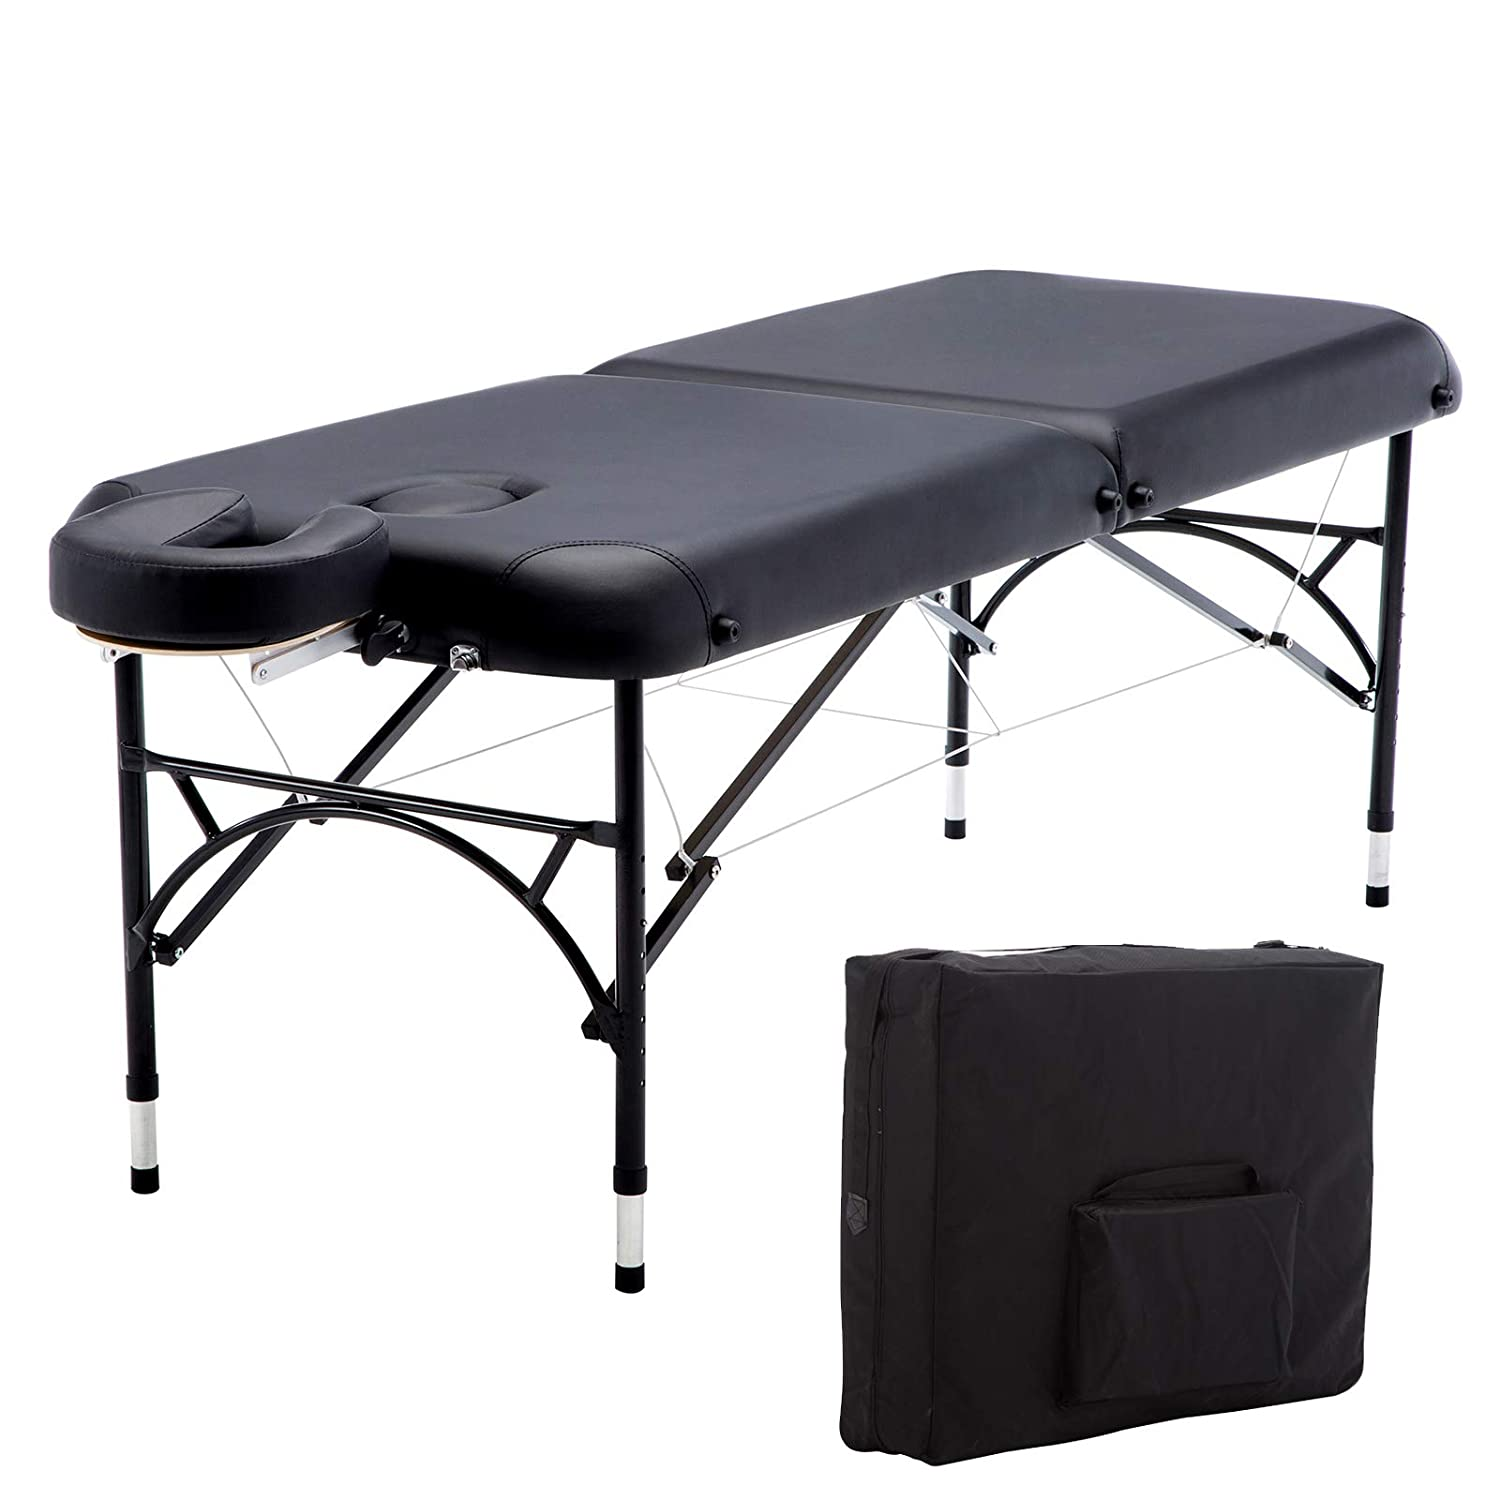 Artechworks 84 Professional 2 Folding Portable Lightweight Massage Table Facial Solon Spa Tattoo Bed With Aluminium Leg 2.56 Thick Cushion of Foam